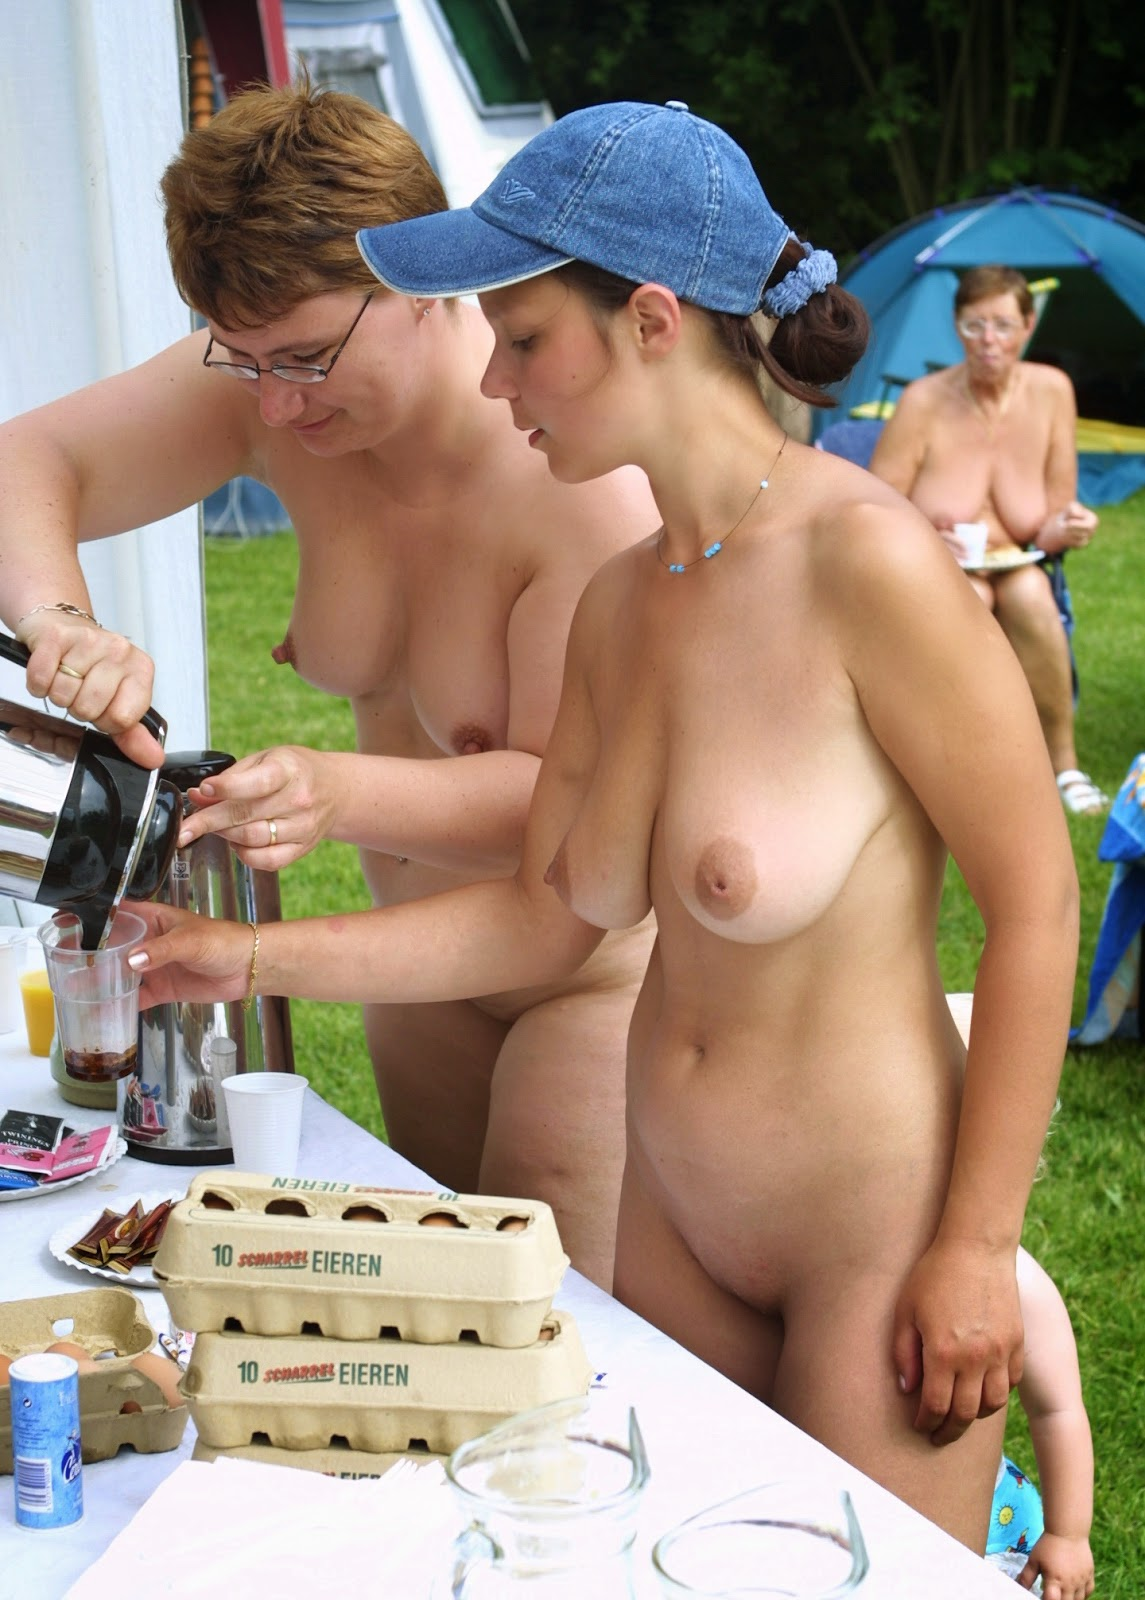 Nudist camps licking county ohio